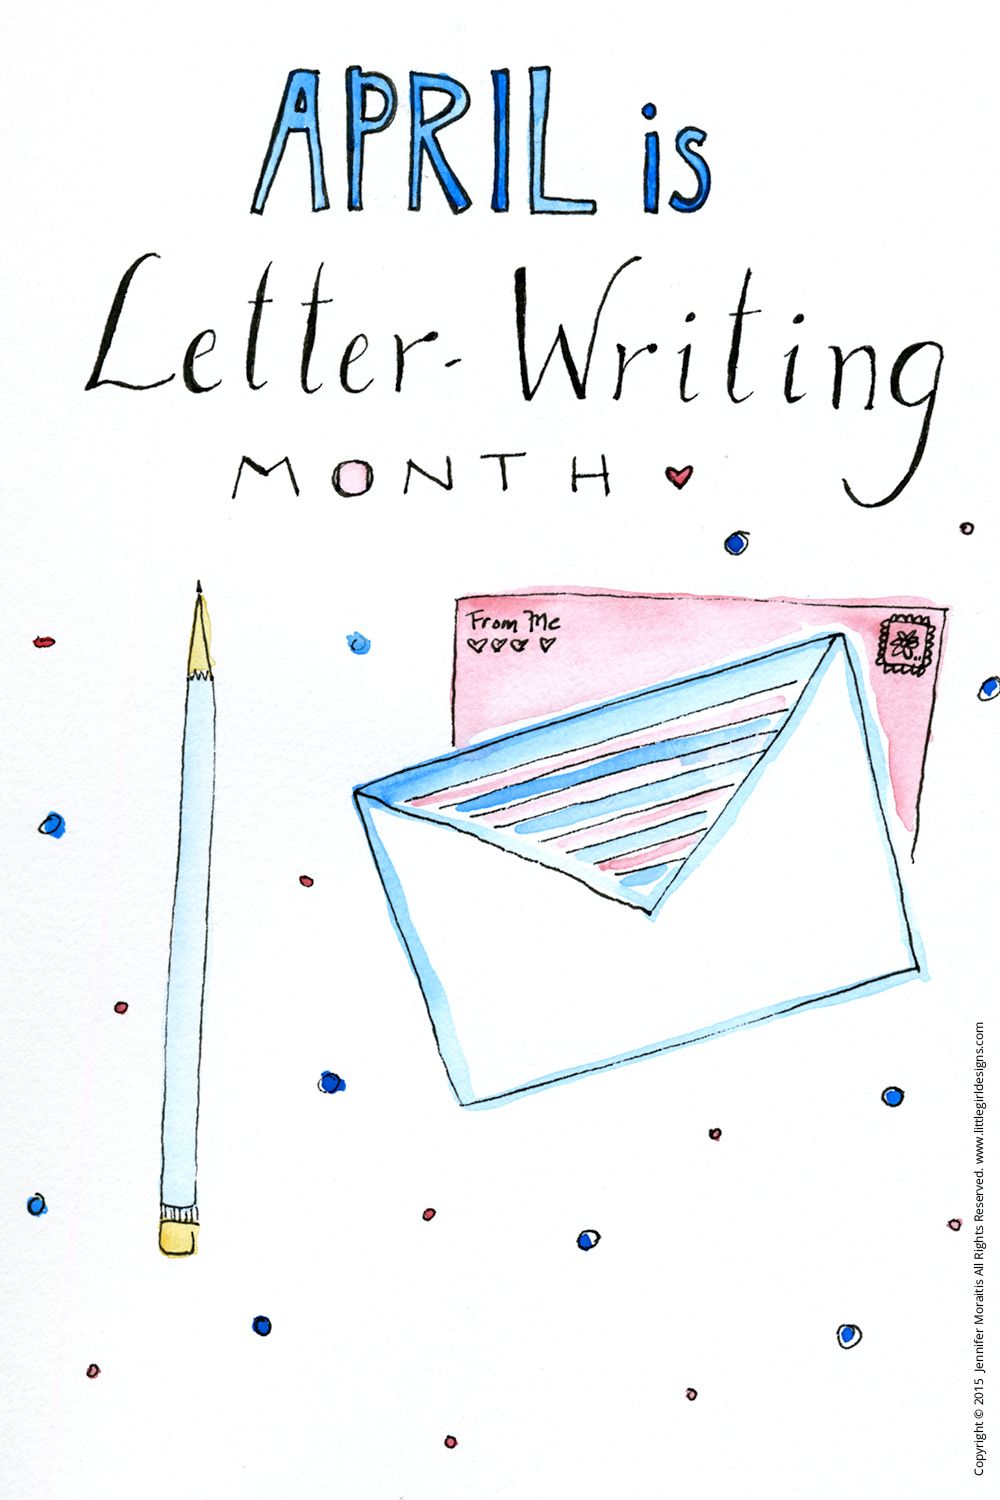 Did you know April is Letter Writing Month? Let's bring back snail mail with tips, tutorials, printables, and prompts for all things letter writing! Yay for old-fashioned cards and mail!